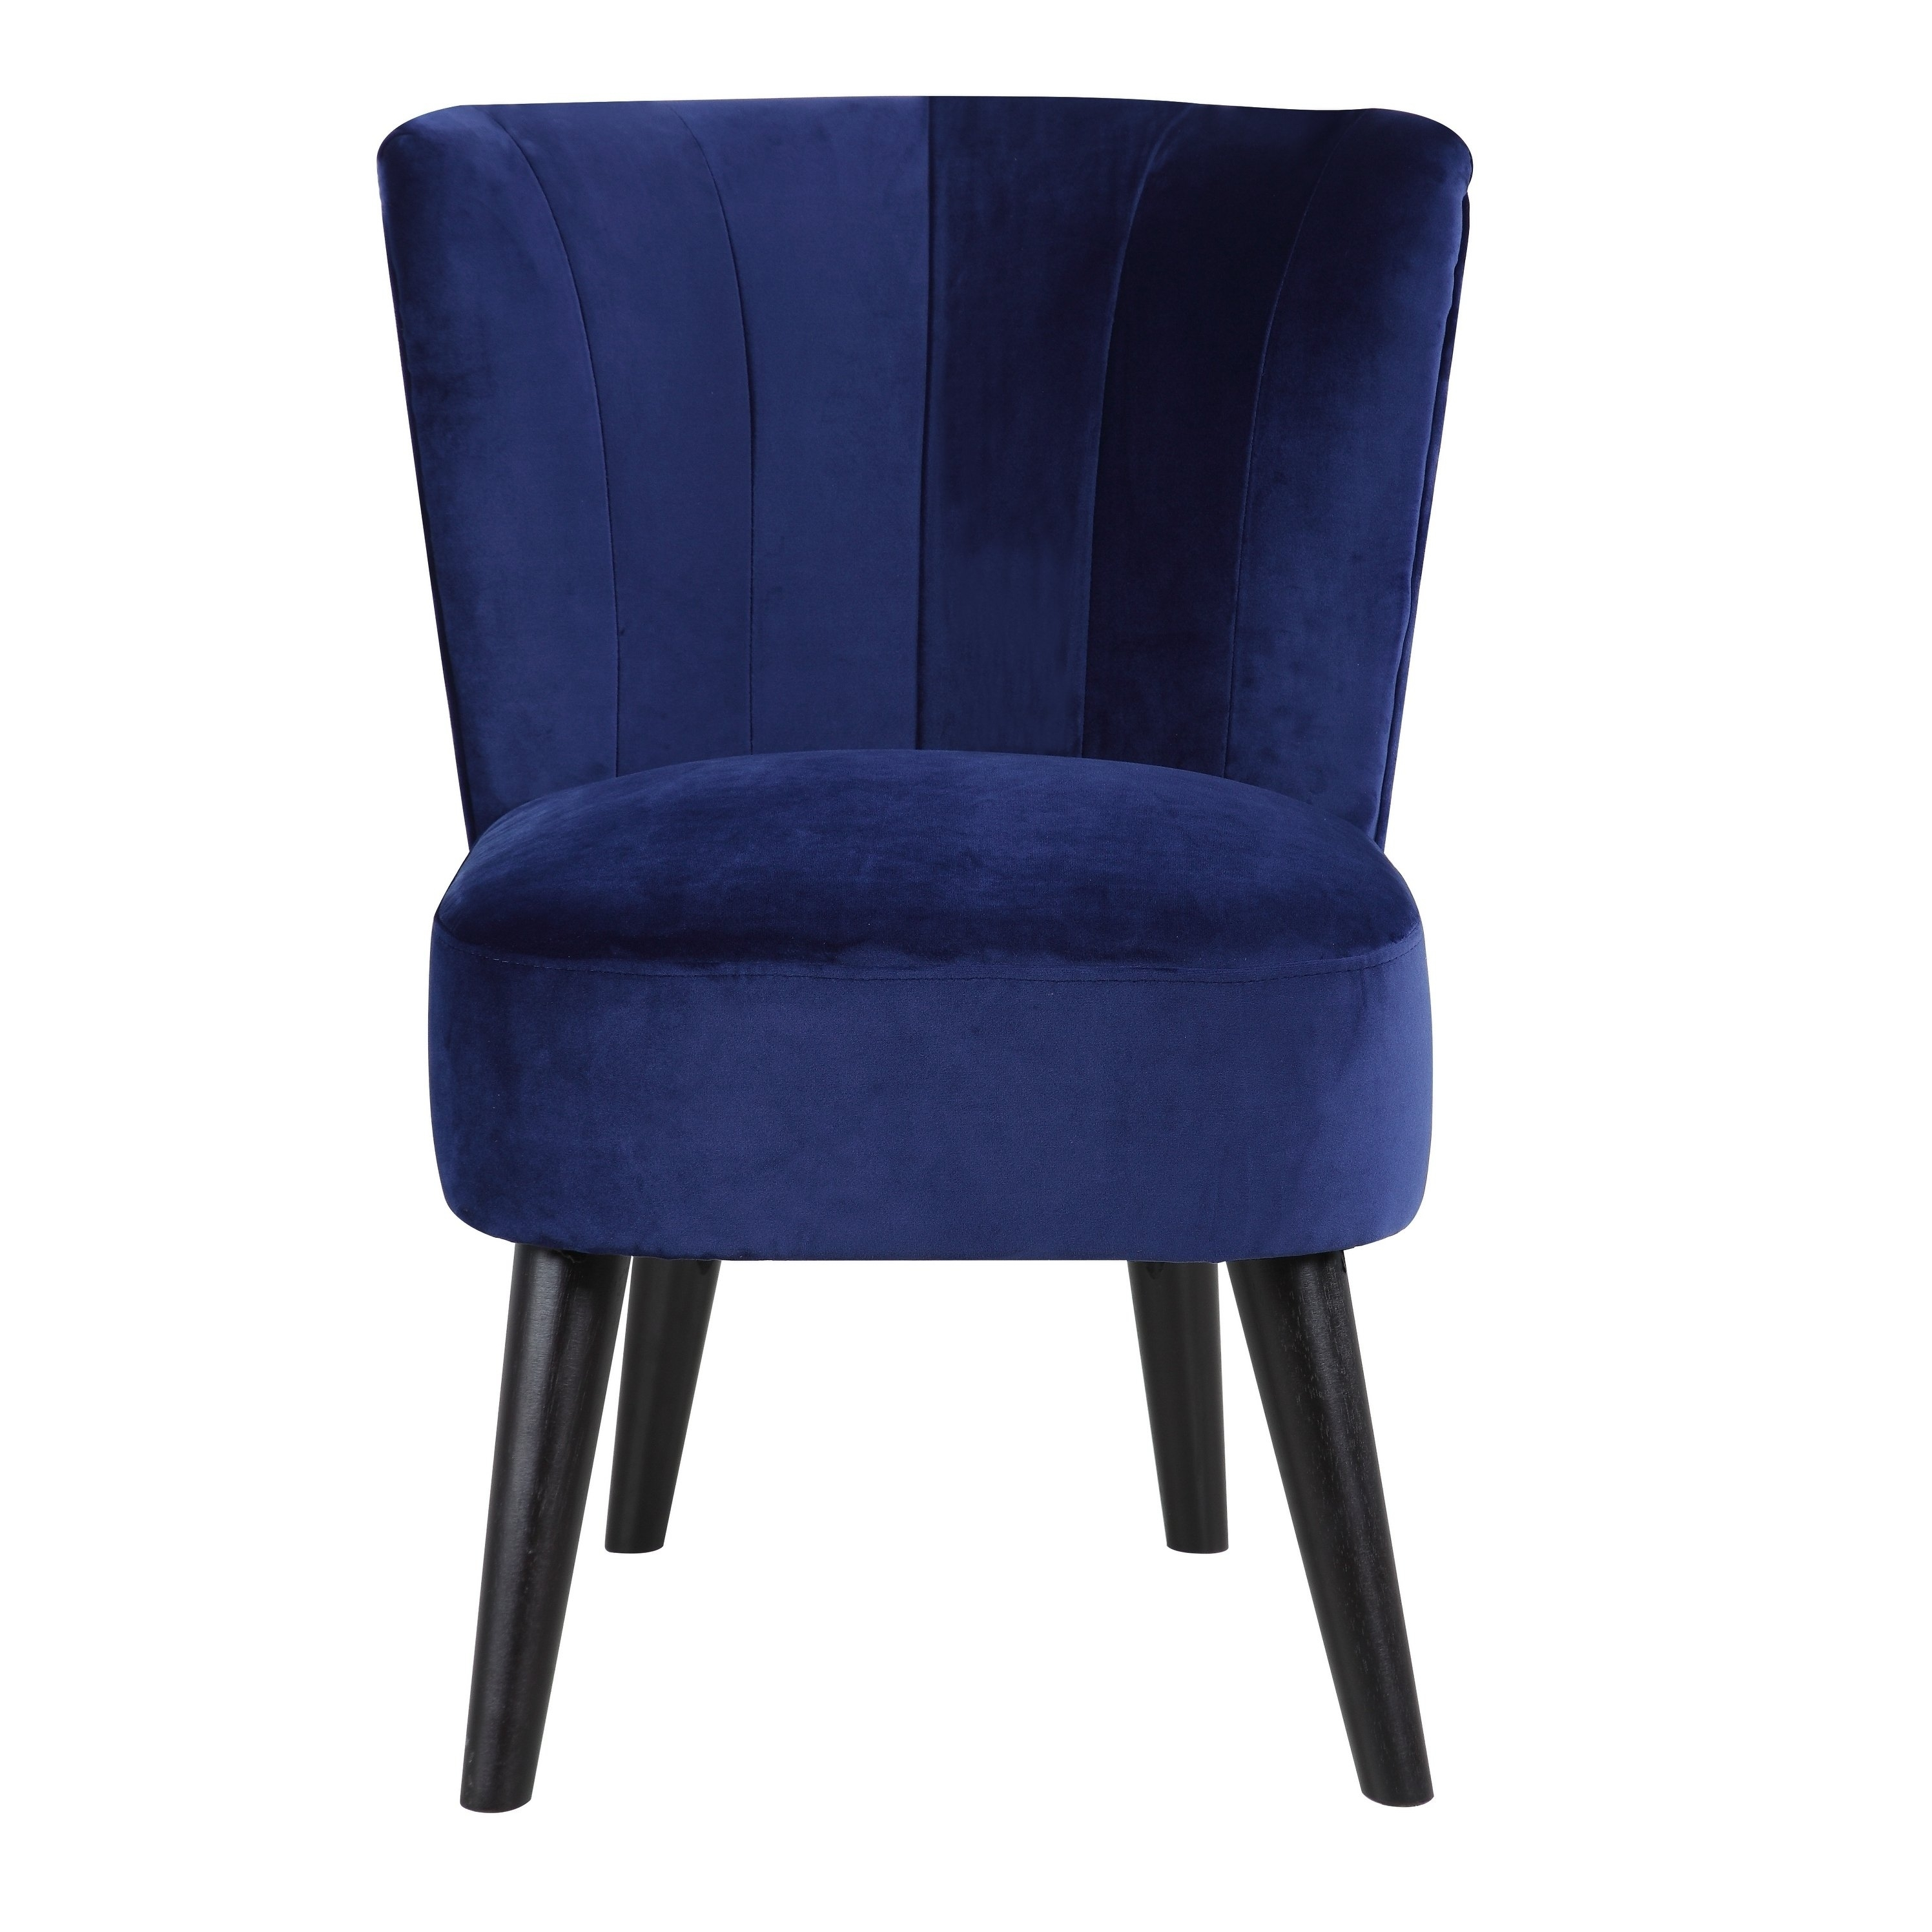 Our Best Living With Regard To Nautical Blue Side Chairs (#16 of 20)